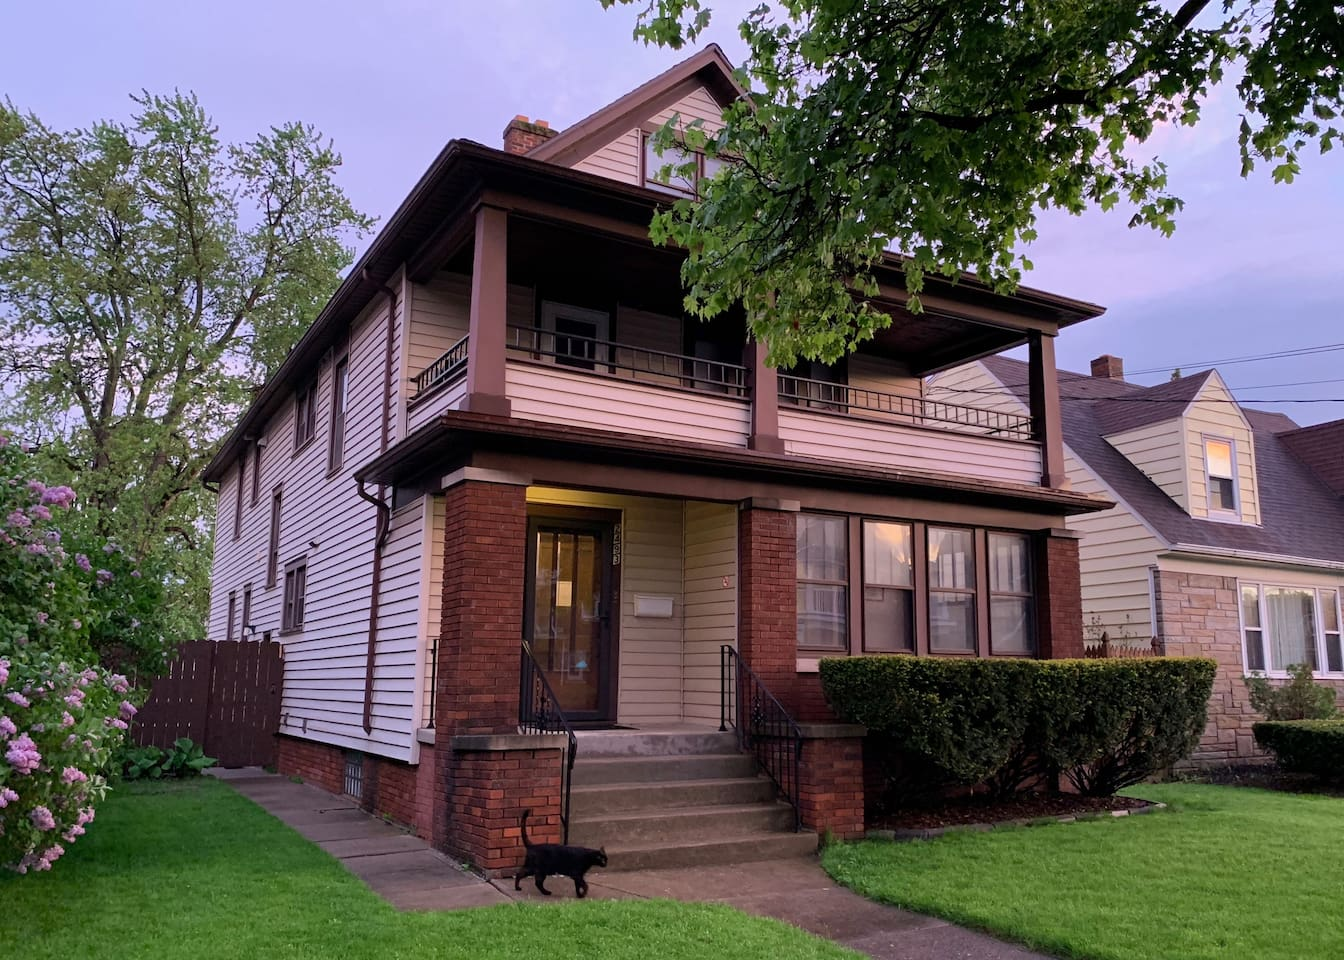 The rental is on the bottom floor of this house that sits in a great neighborhood.